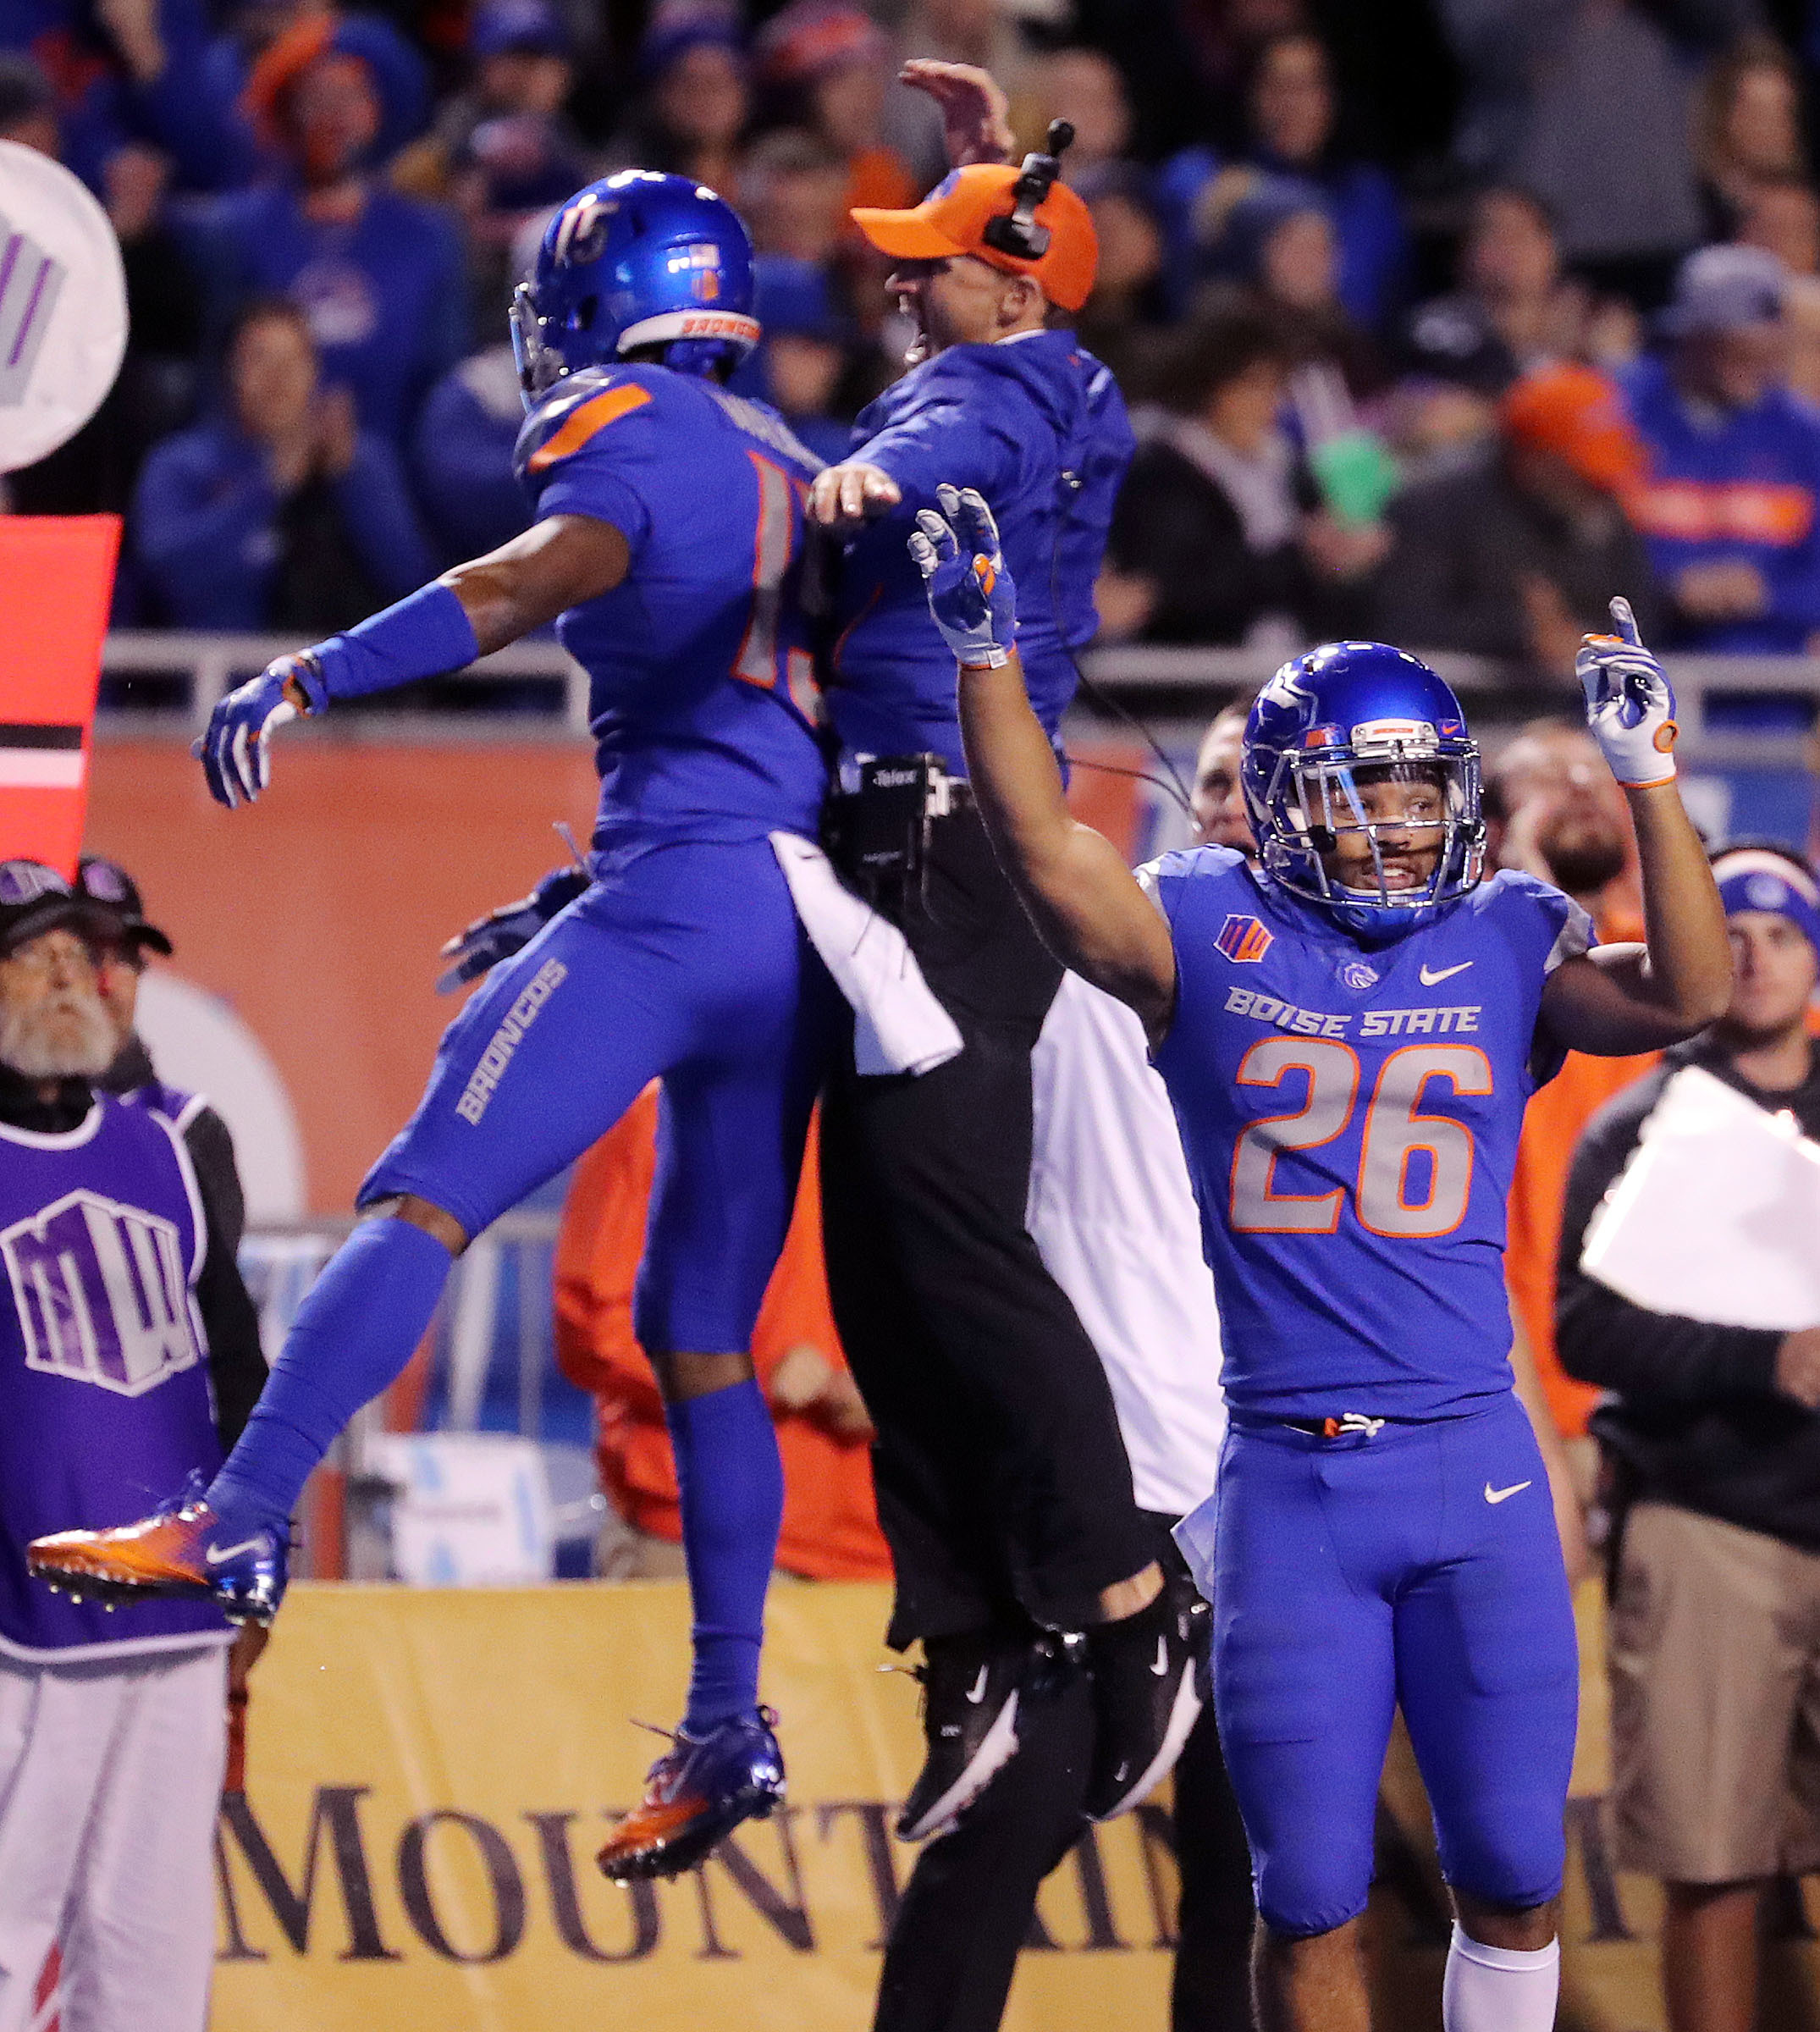 Boise State Broncos cornerback Avery Williams (26) celebrates as the Boise State Broncos recover a BYU fumble during NCAA football in Boise on Saturday, Nov. 3, 2018.